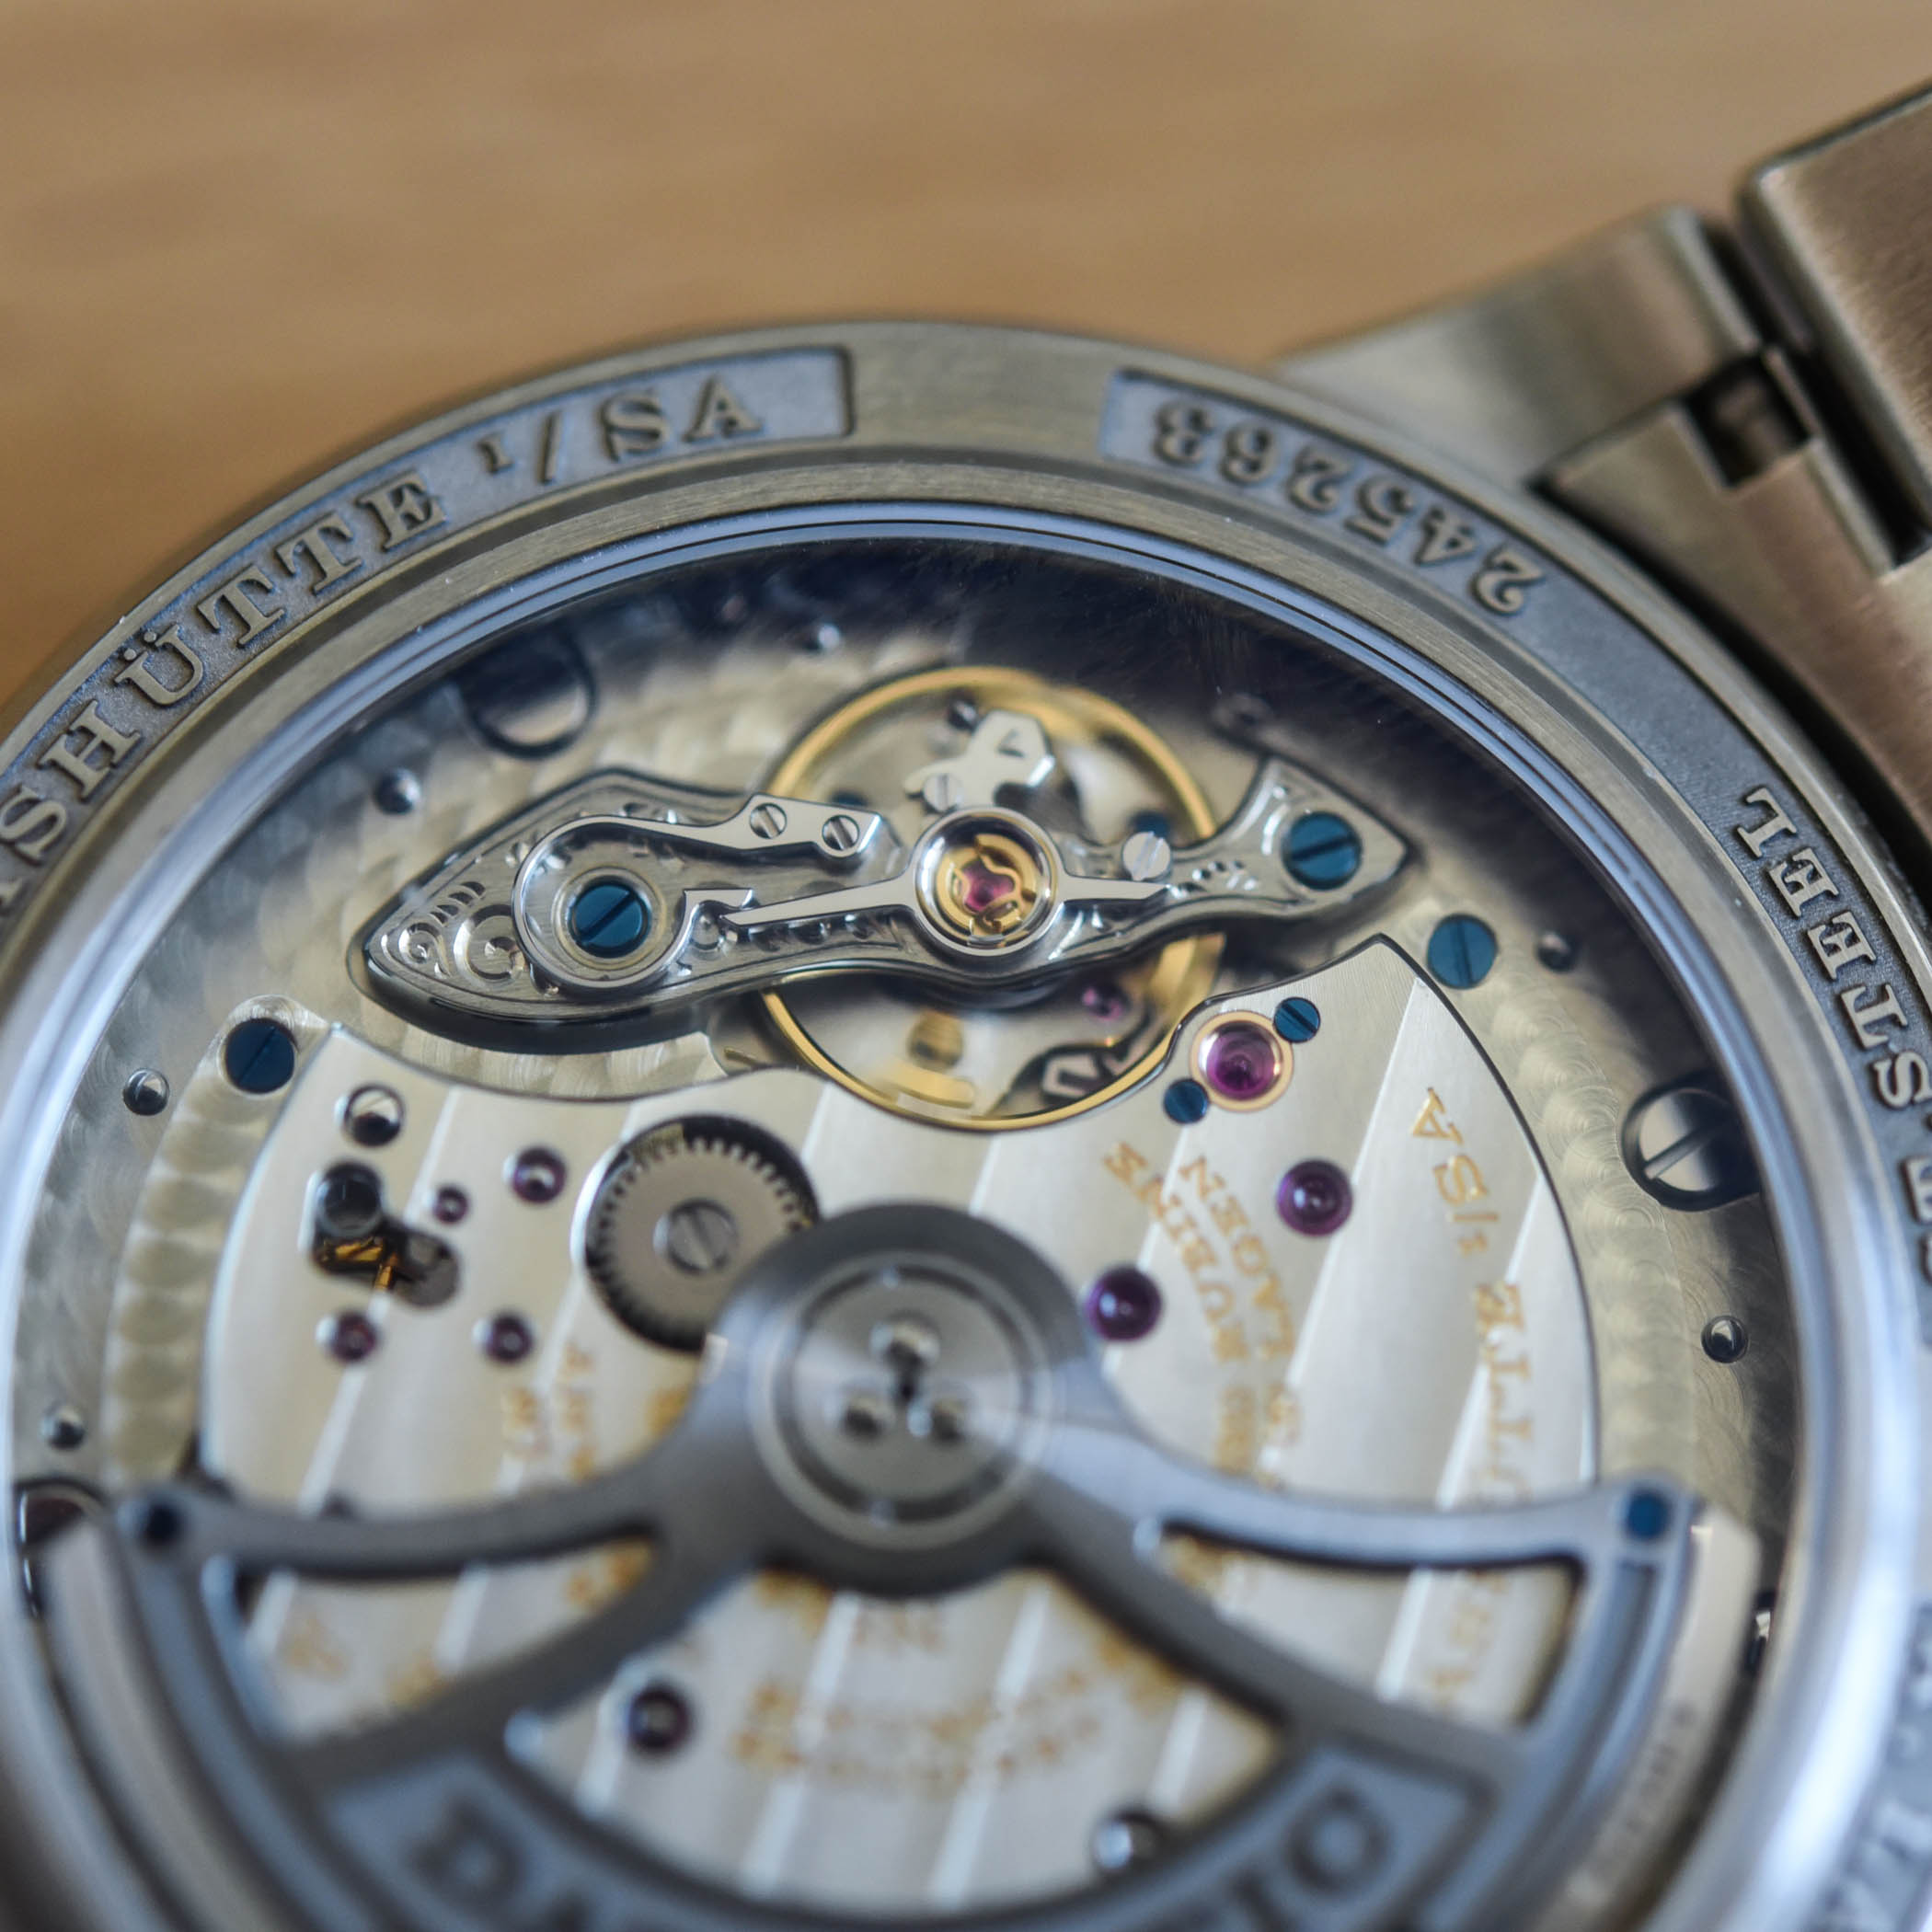 A Lange Sohne Odysseus Steel 363.179 Review - 17